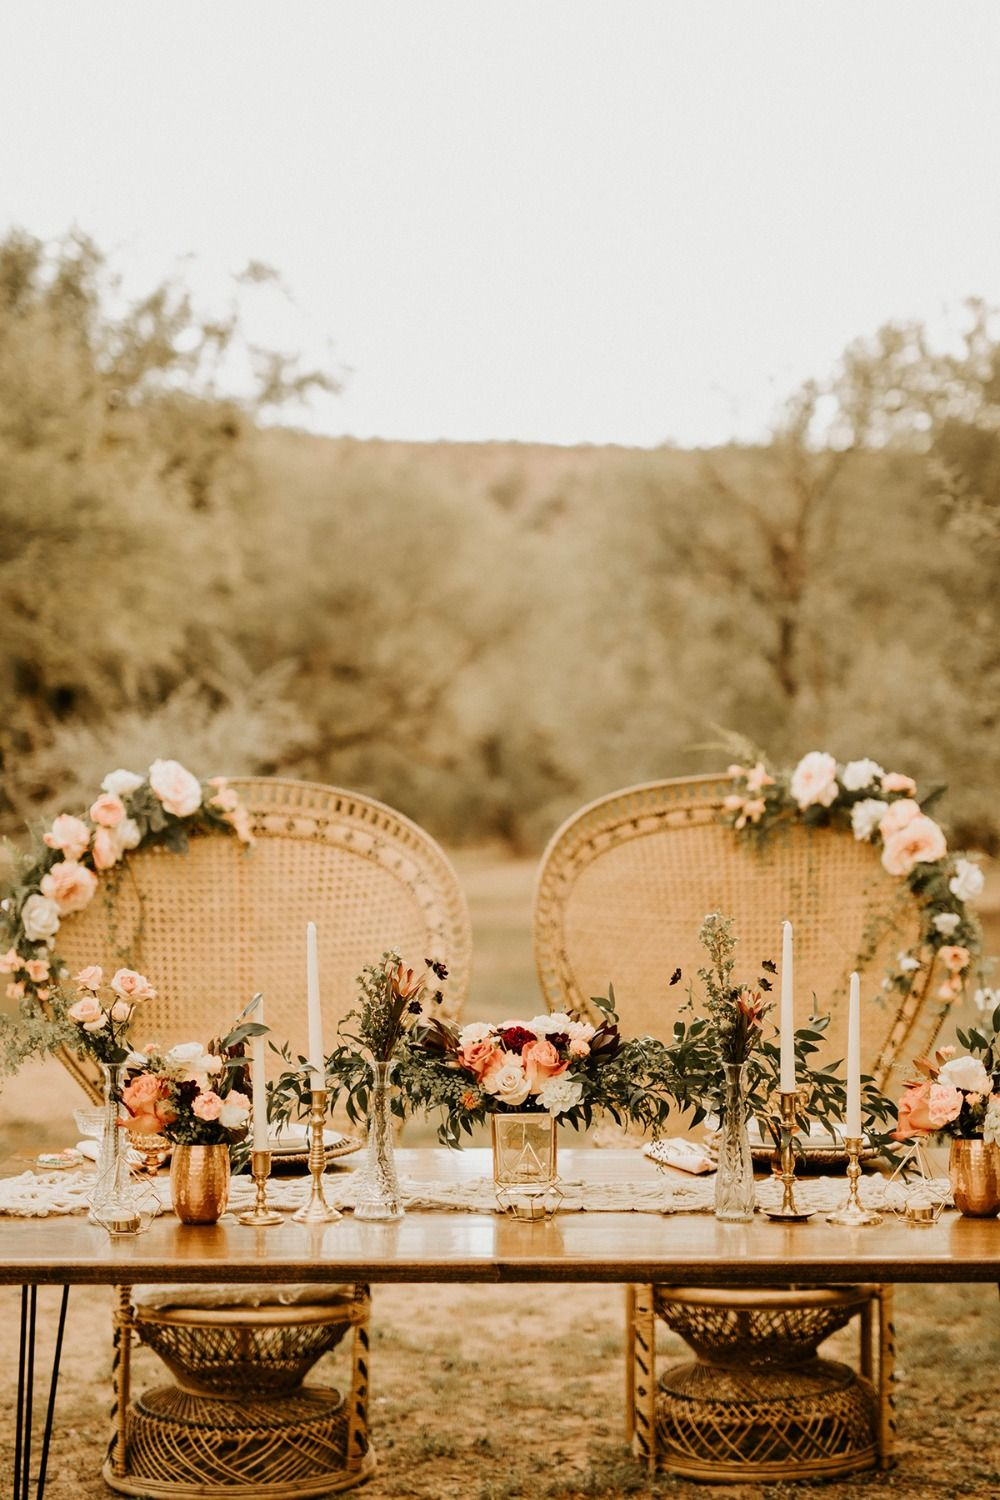 You Re A Boho Princess Here S How To Have A Wedding To Match